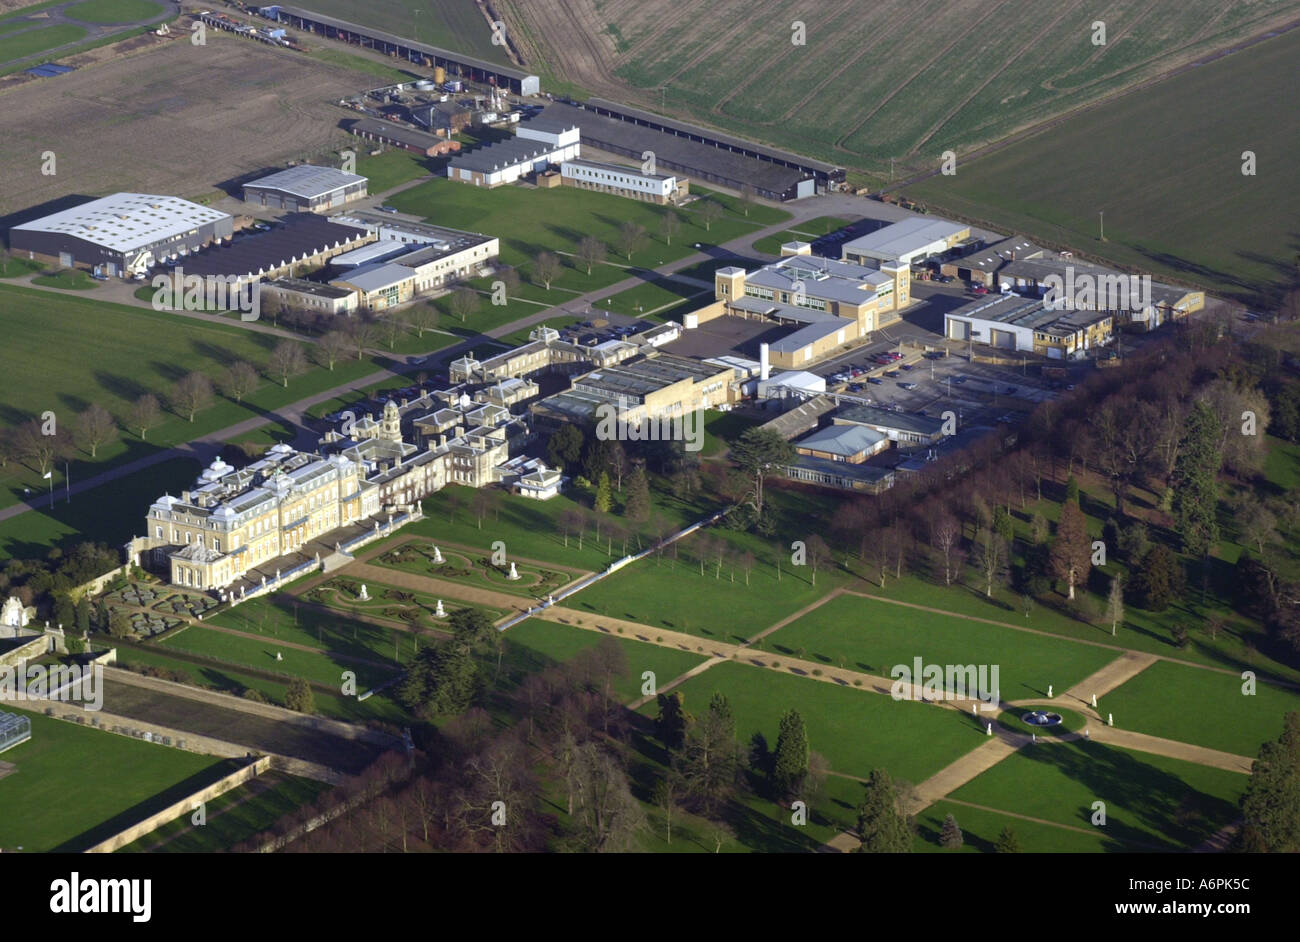 silsoe research institute My research area is the development of novel chemical sensors and biosensors  at  scientific researcher, bbsrc, silsoe research institute, uk, 2000-2005.